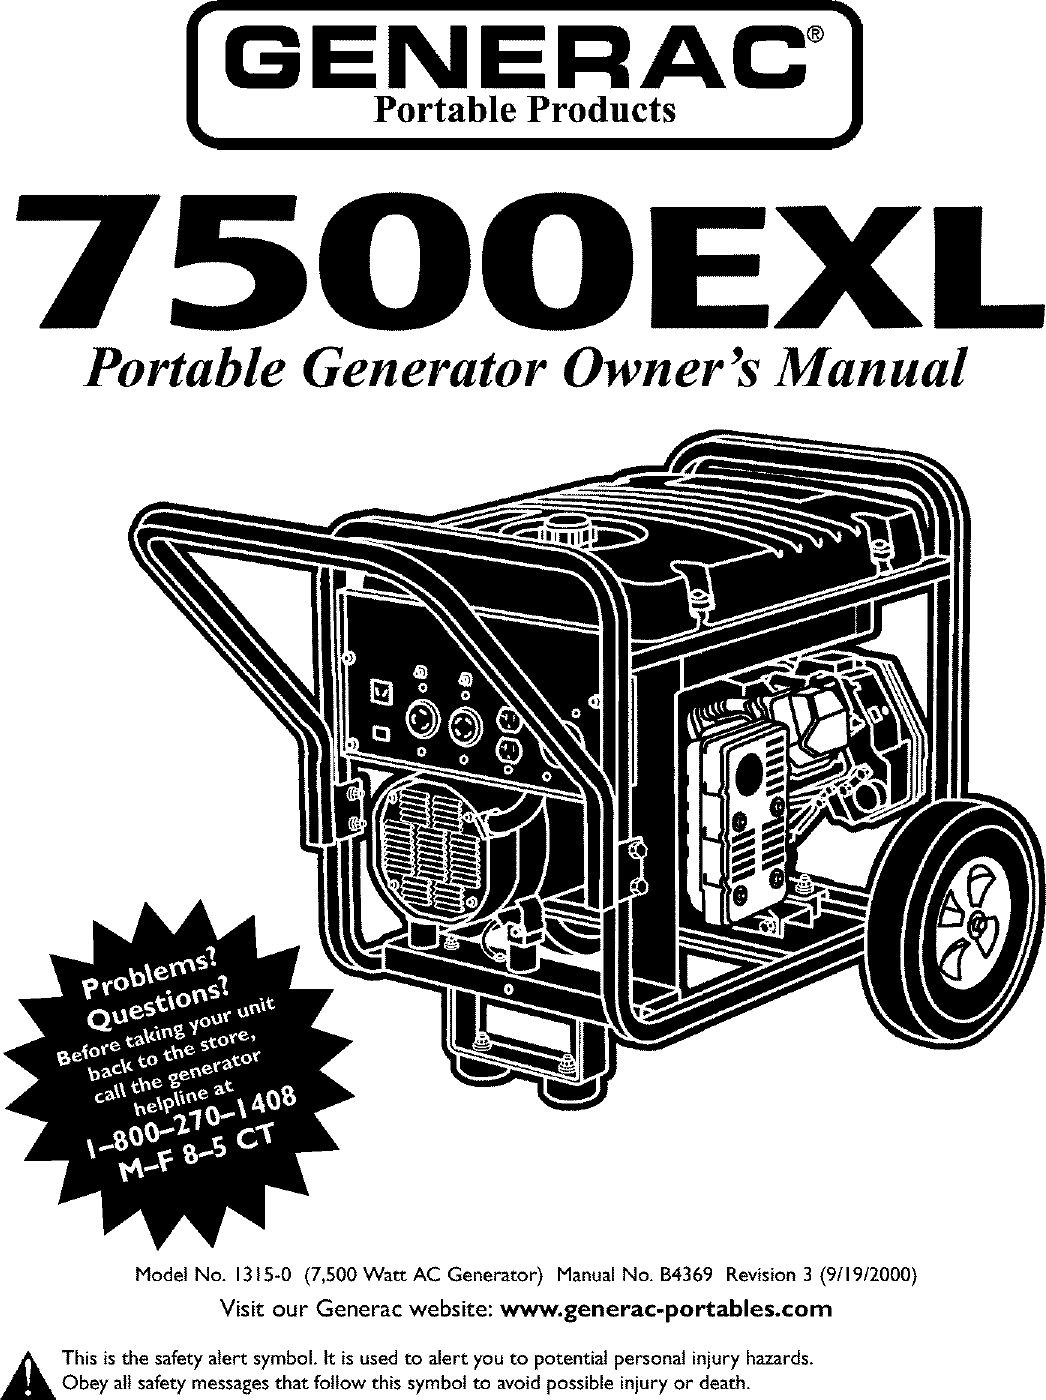 Generac 1315 0 User Manual GENERATOR Manuals And Guides L0403232